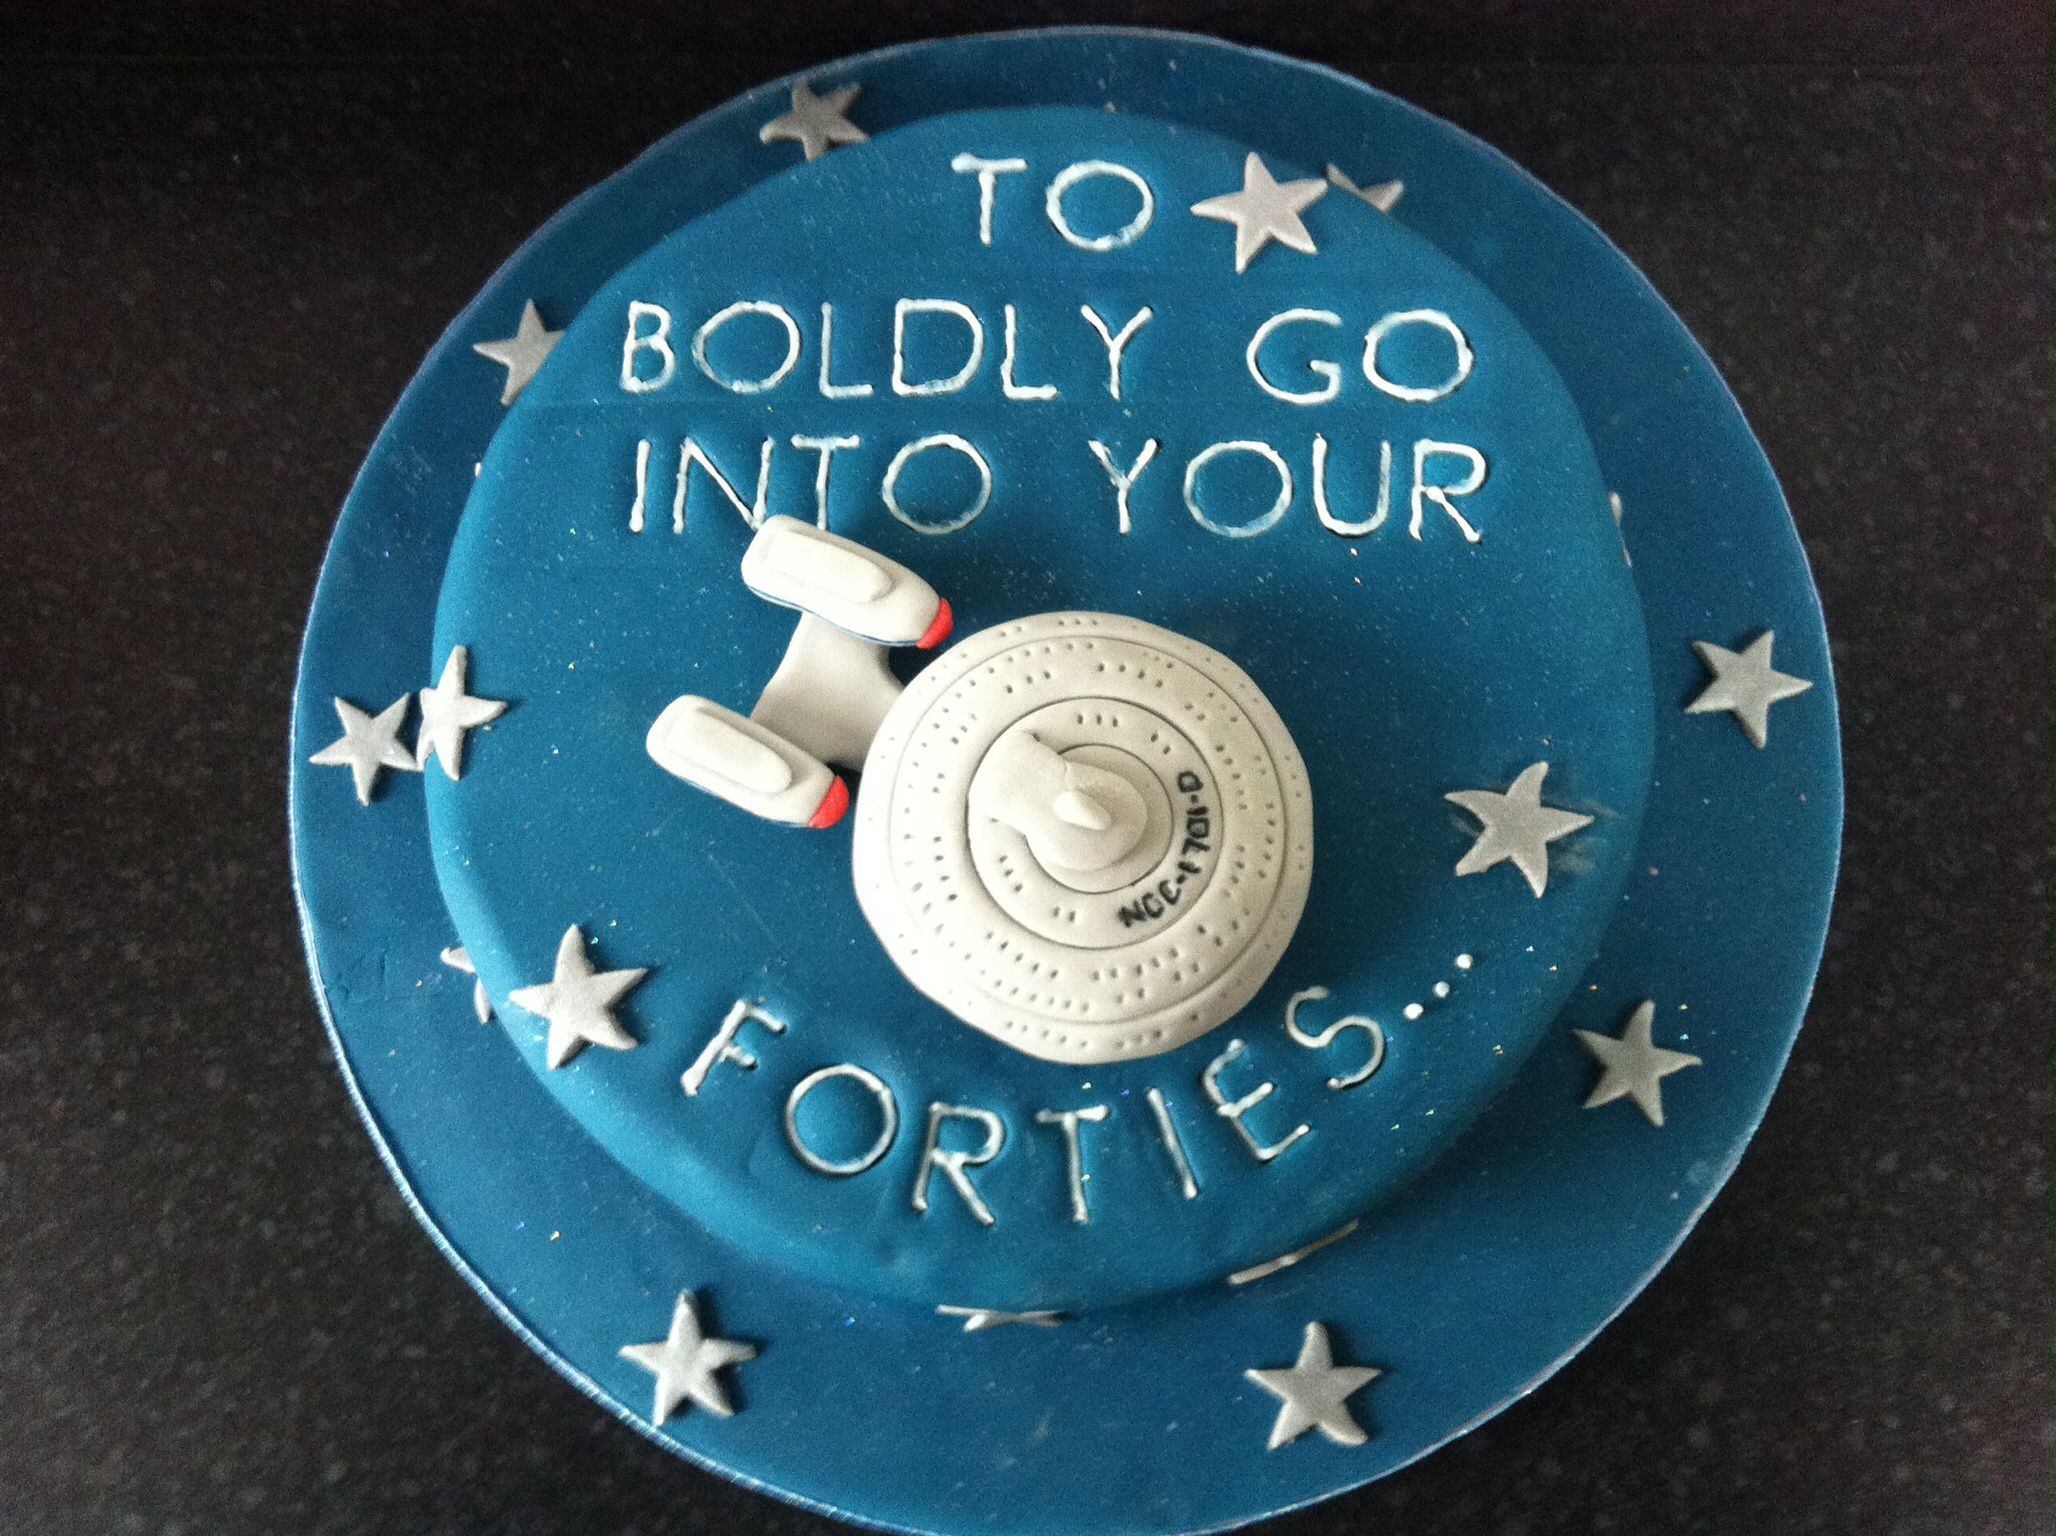 Star Trek Uss Enterprise Cake Stuff I Want To Make